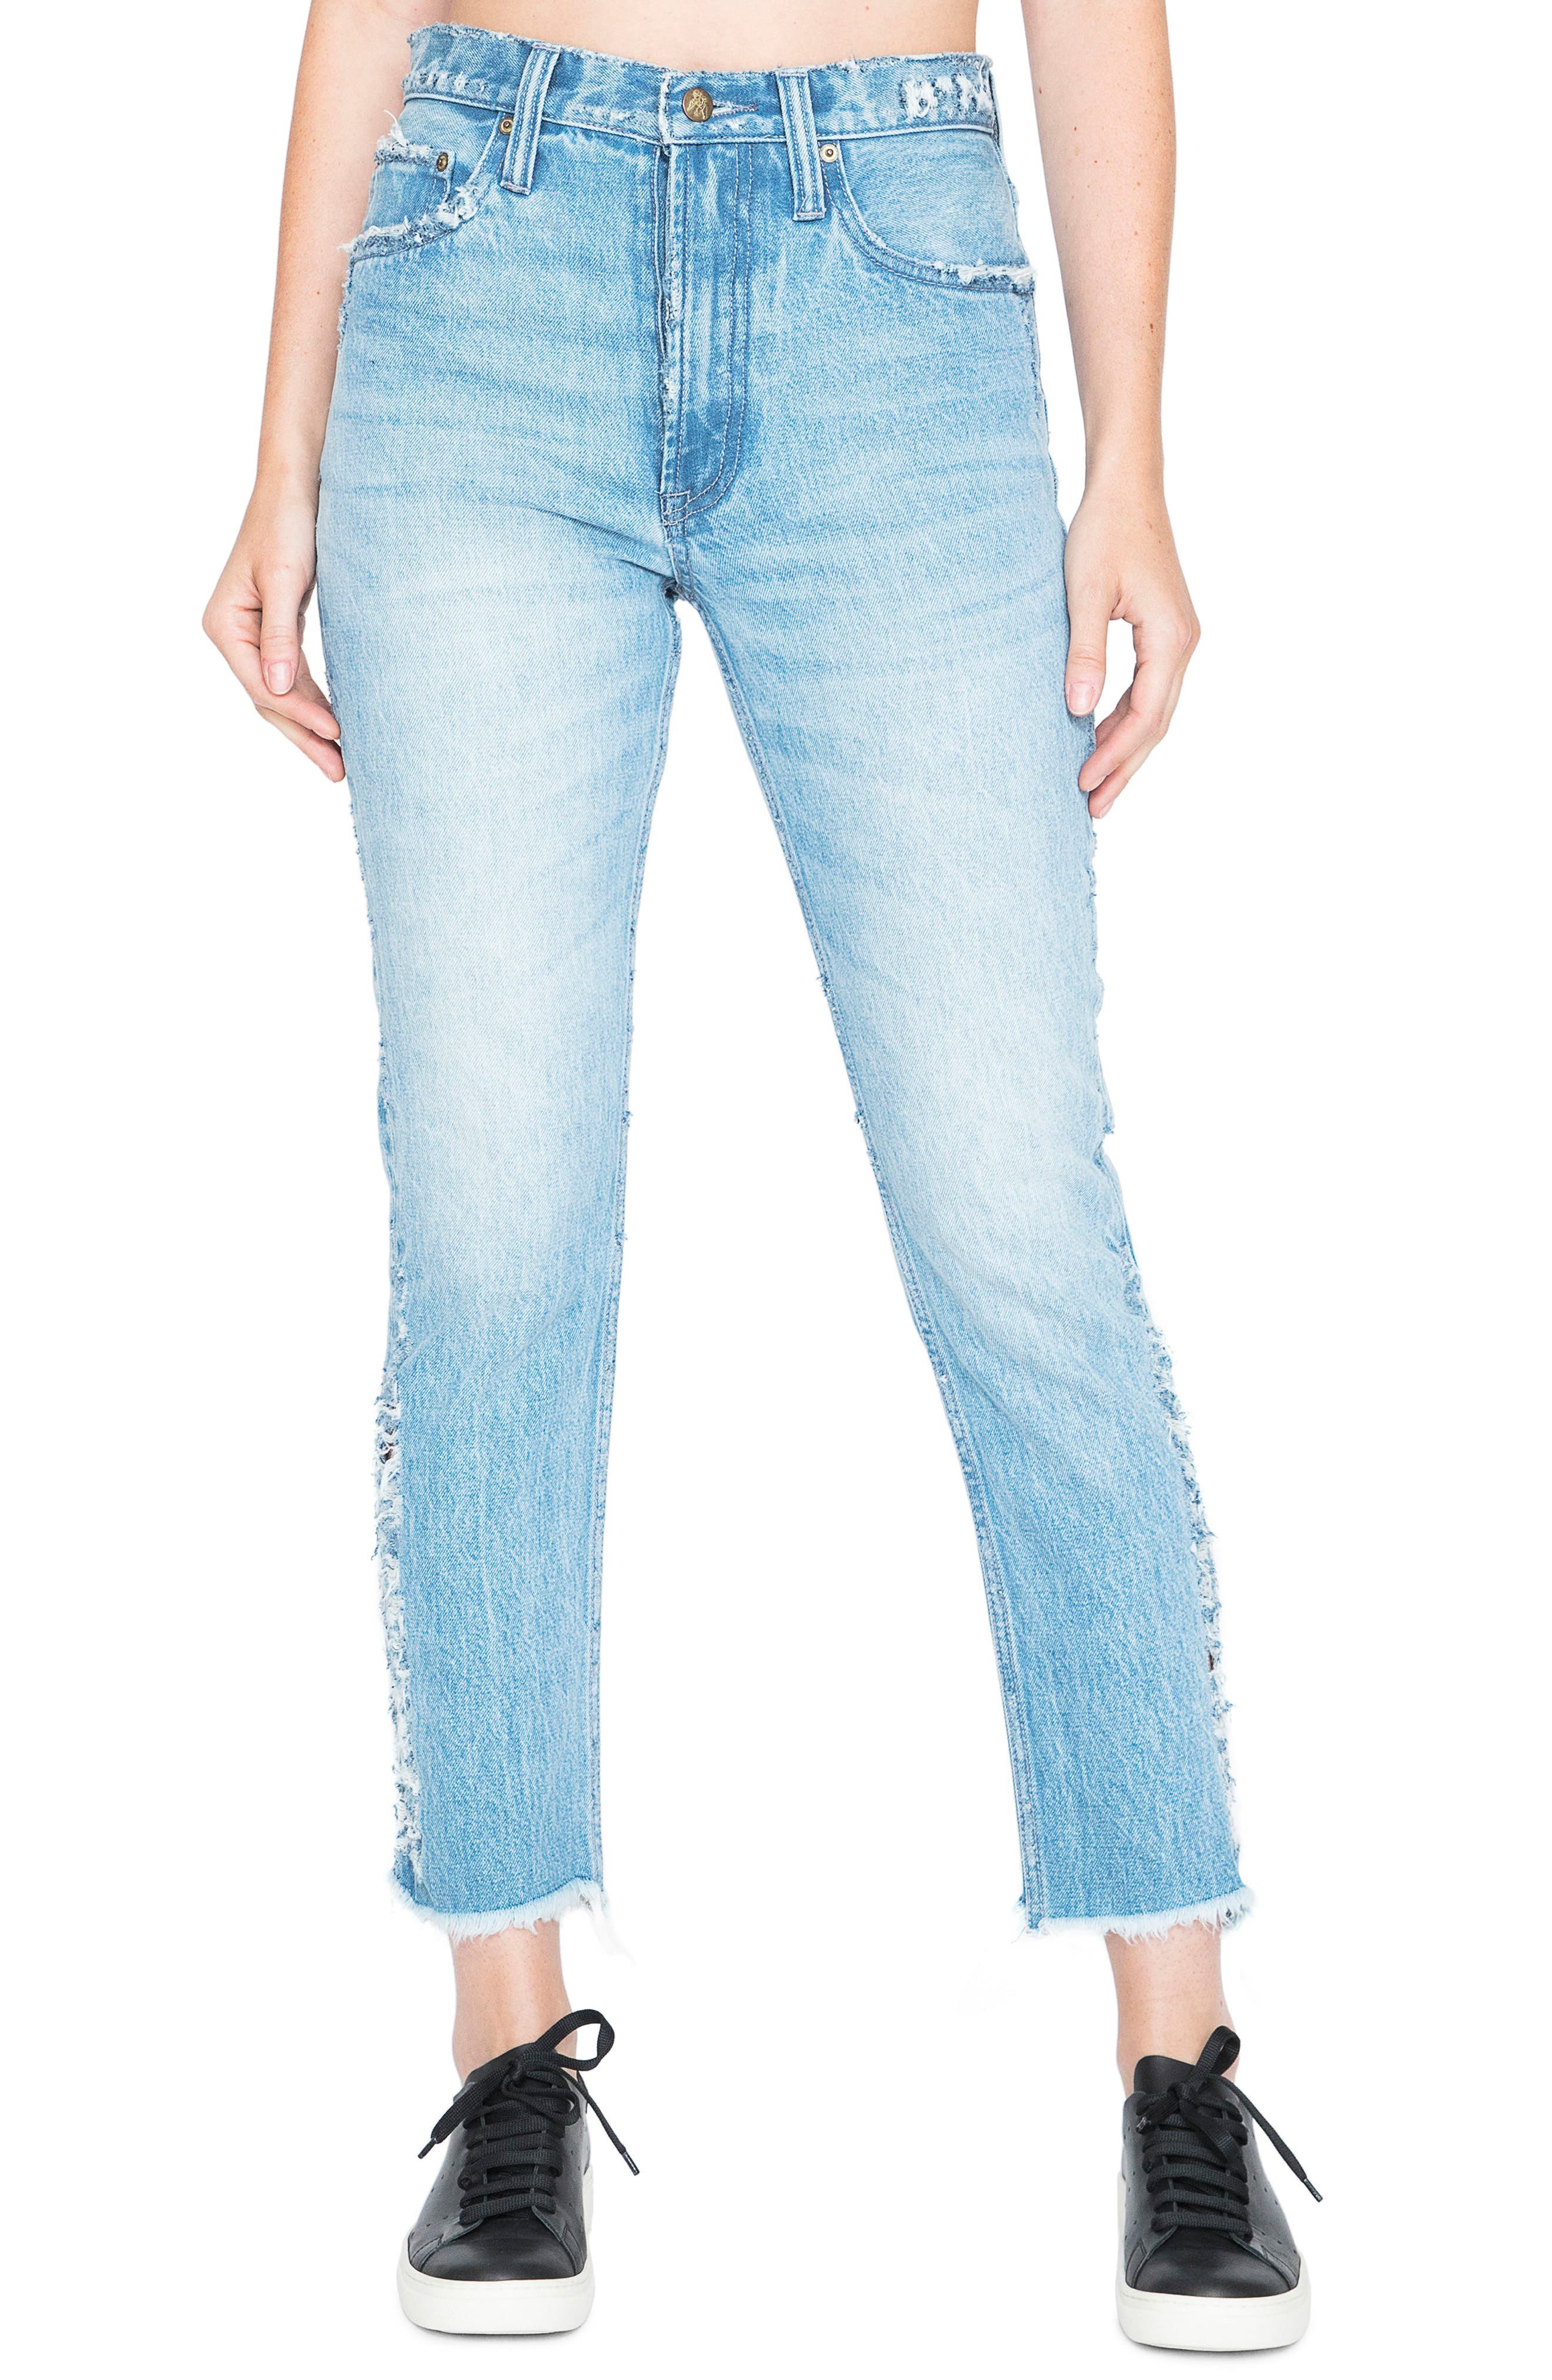 AMX Side Fray High Waist Ankle Jeans,                             Main thumbnail 1, color,                             426